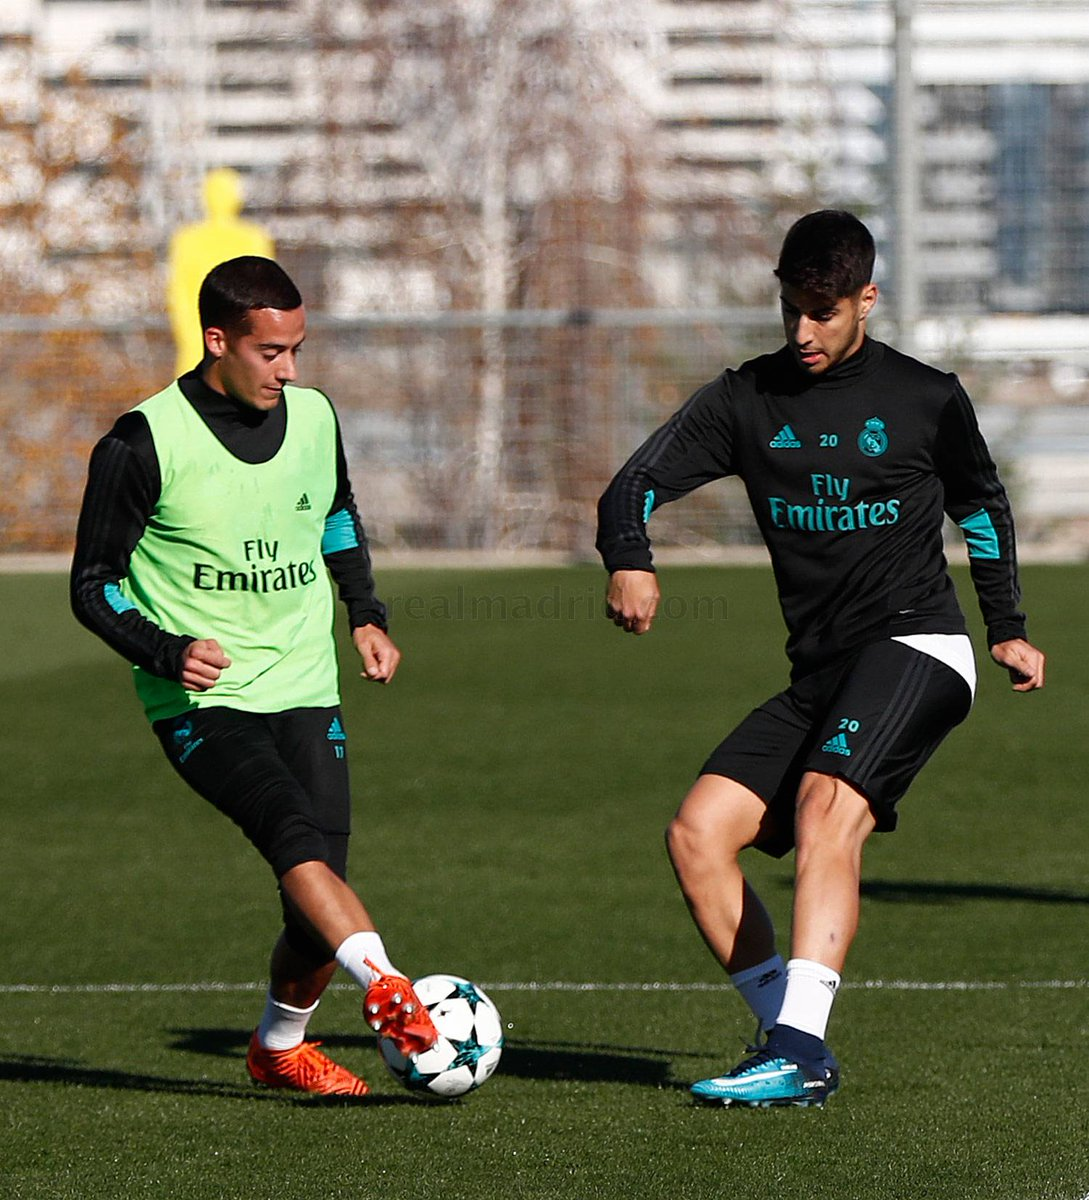 🏃💪⚽ #RMCity We've started our preparatio...